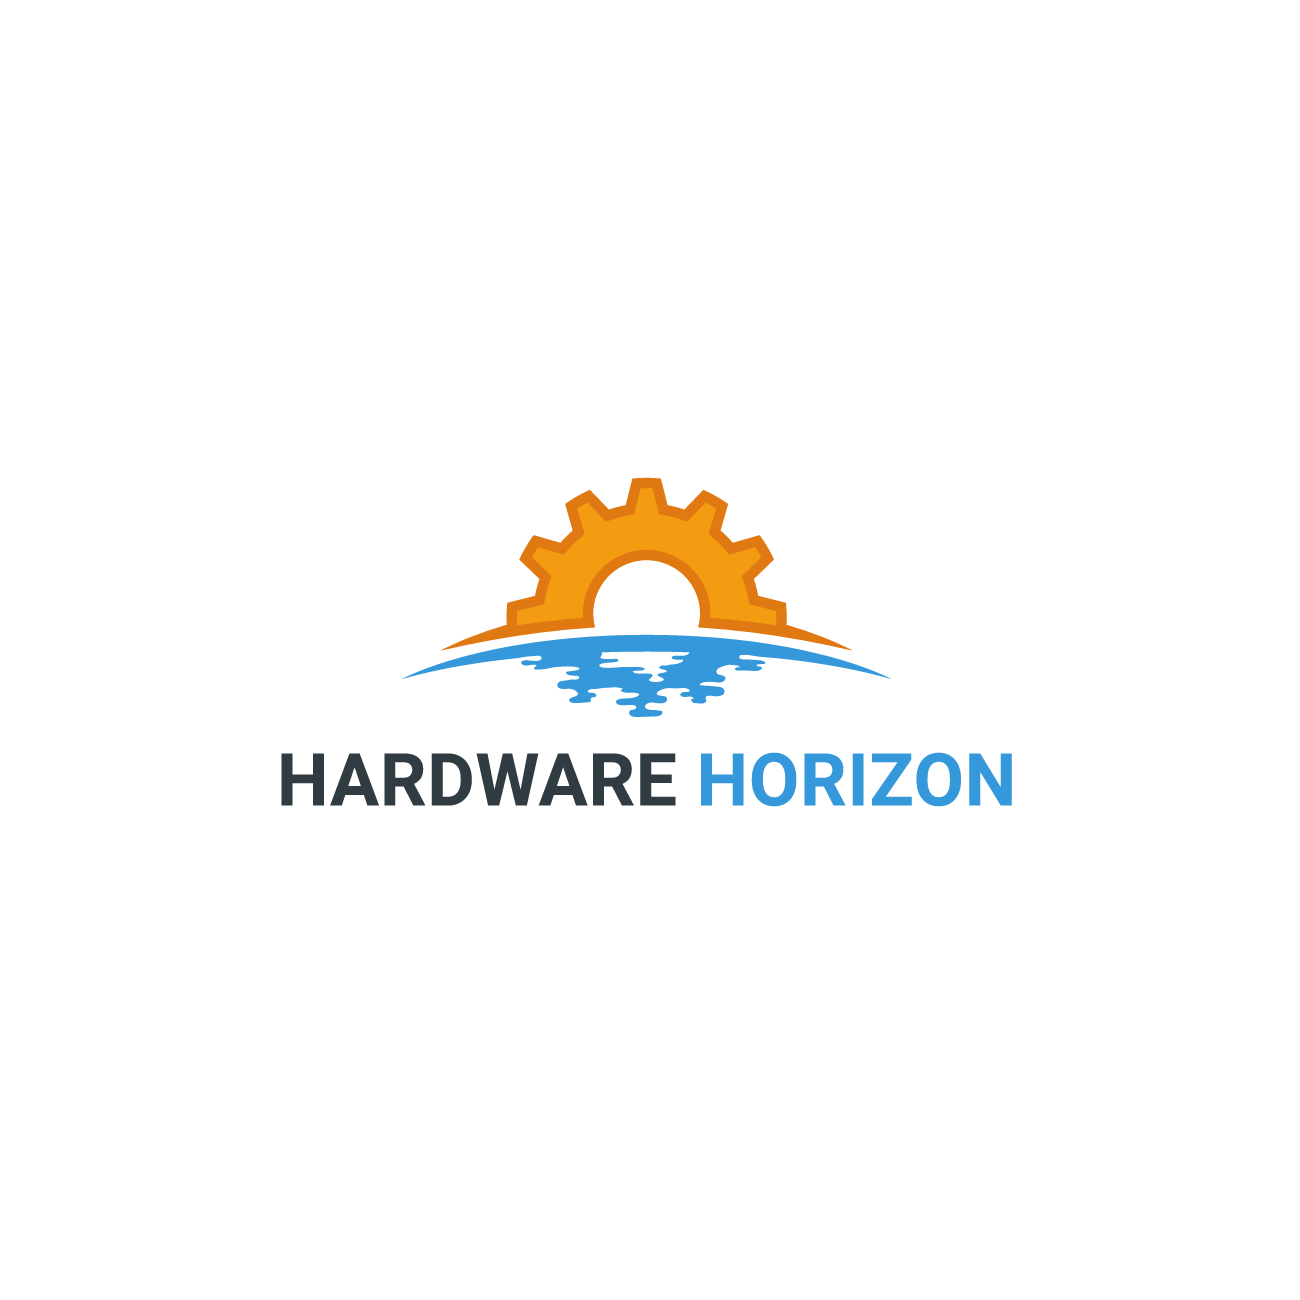 Hardware Horizon